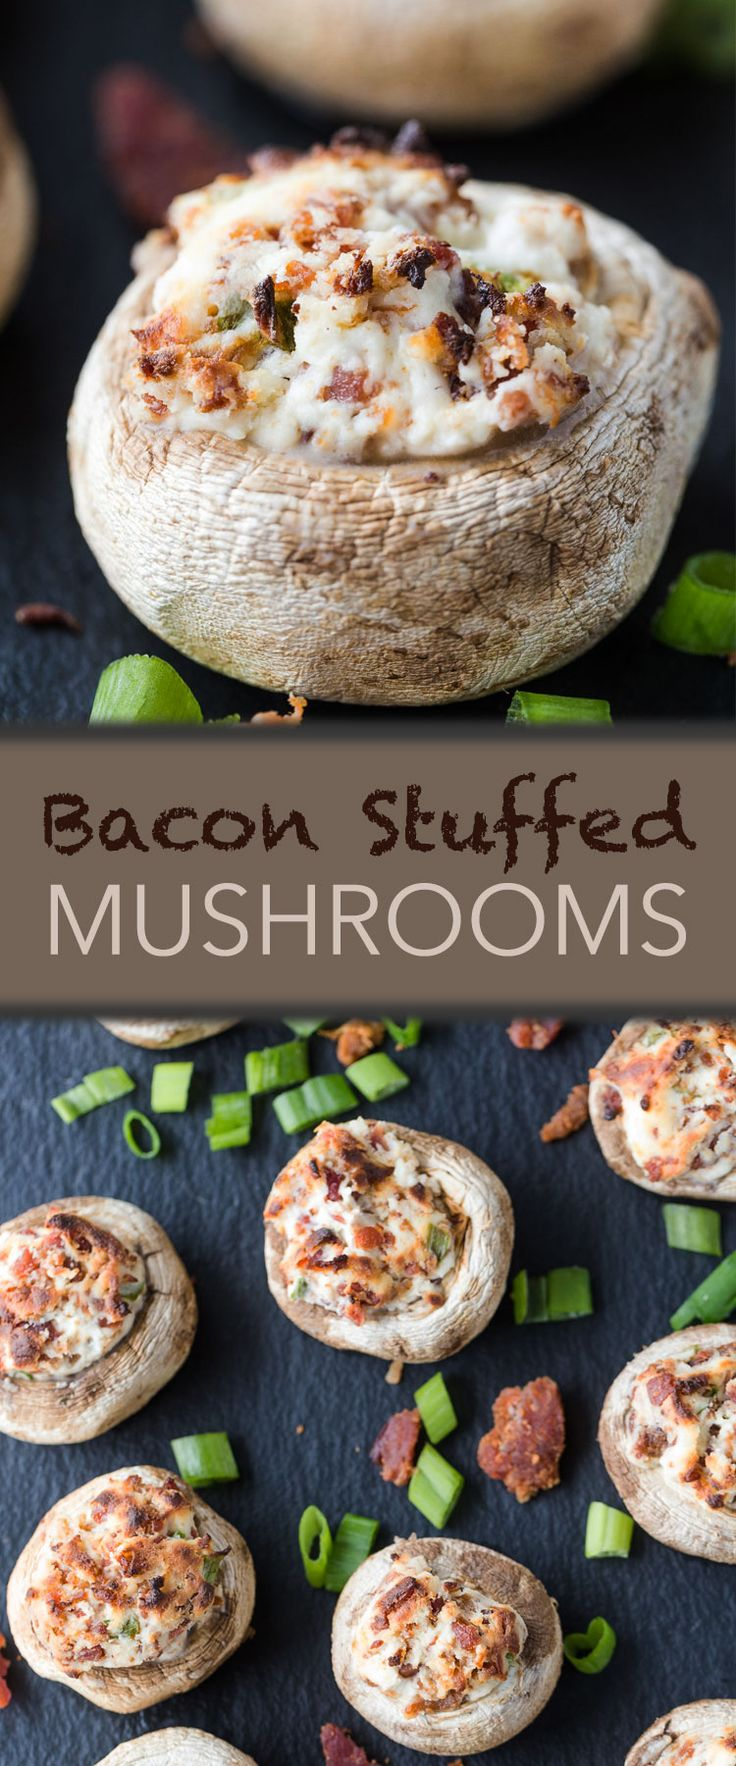 I made Bacon Stuffed Mushrooms for the first time this Christmas Eve, a great recipe for an easy appetizer. Wait, did someone say bacon?!